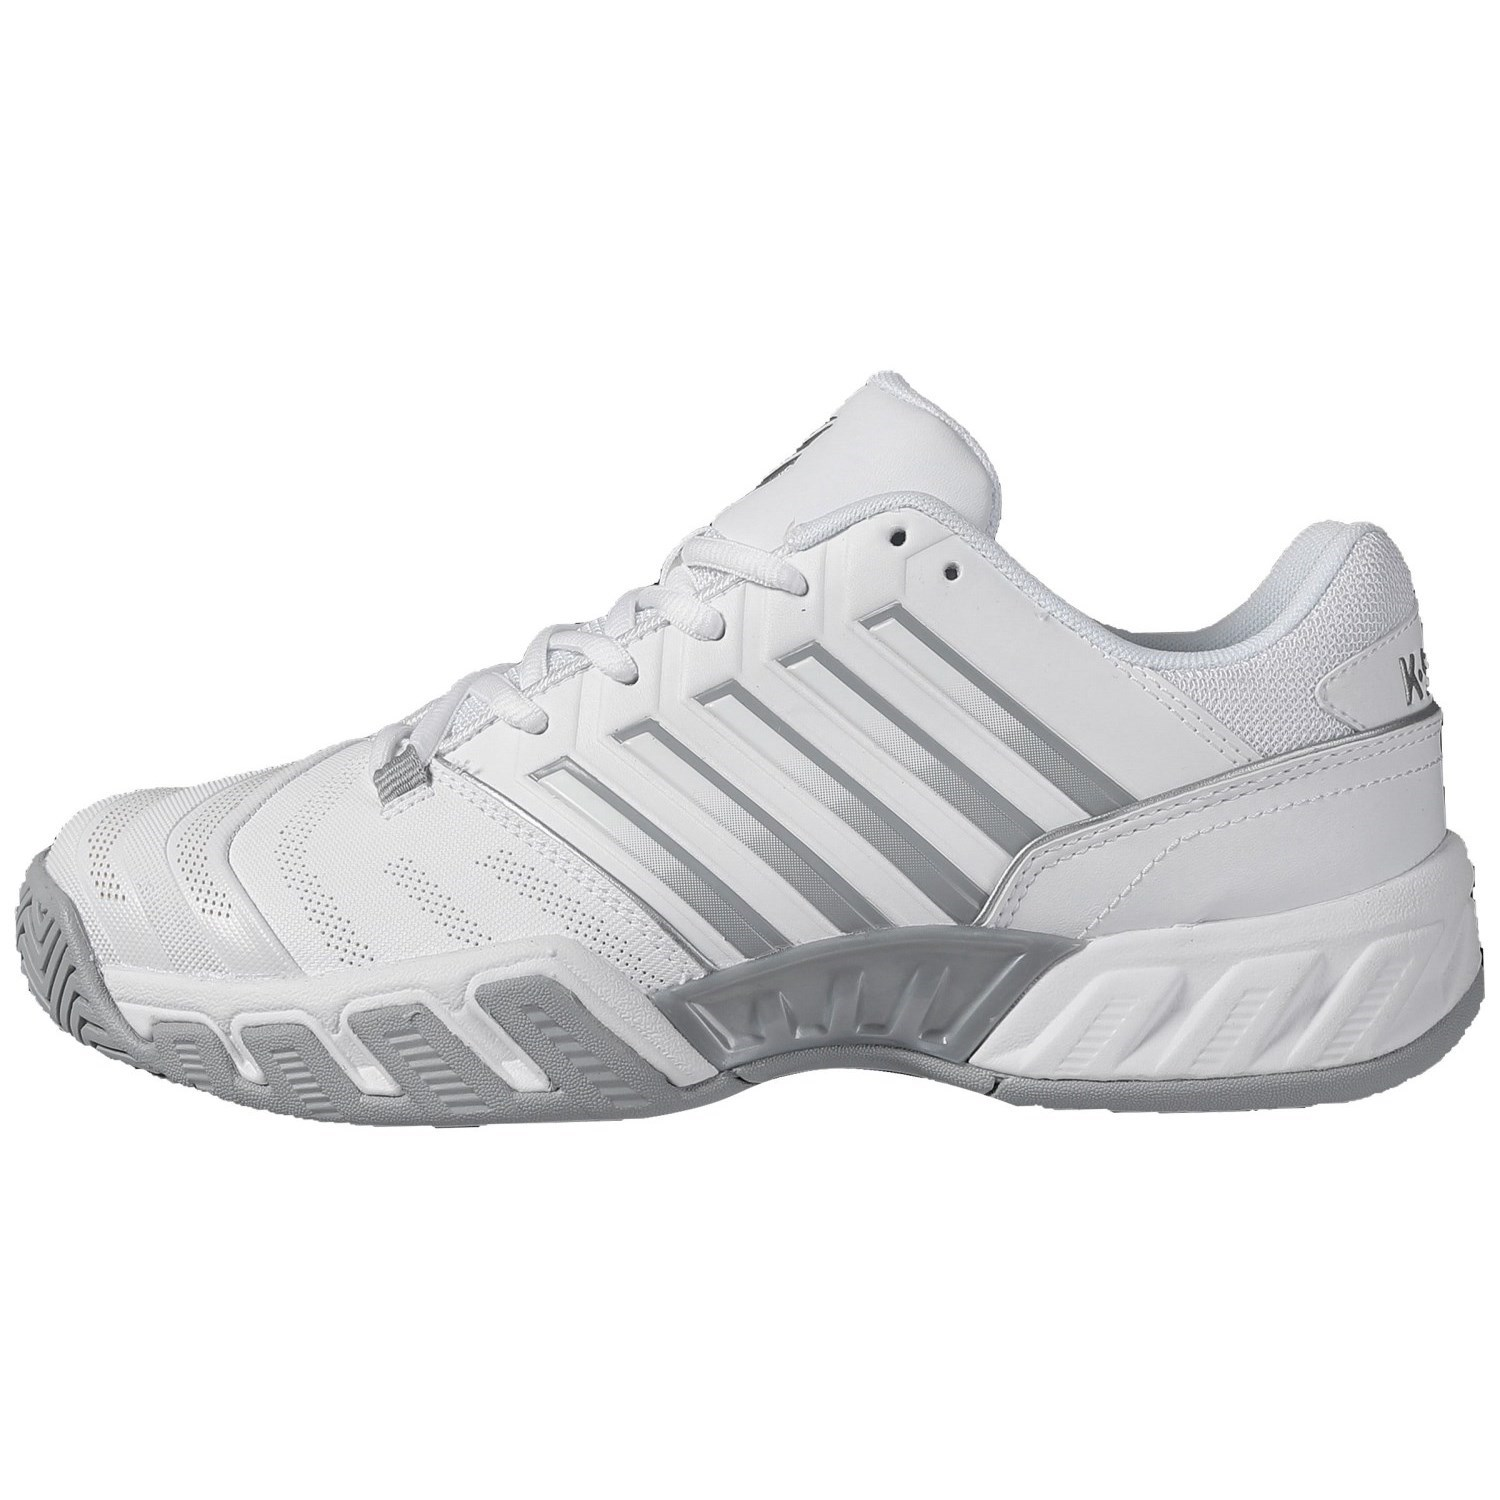 K-Swiss Bigshot Light 4 Womens Tennis Shoes – White/High-Rise/Silver